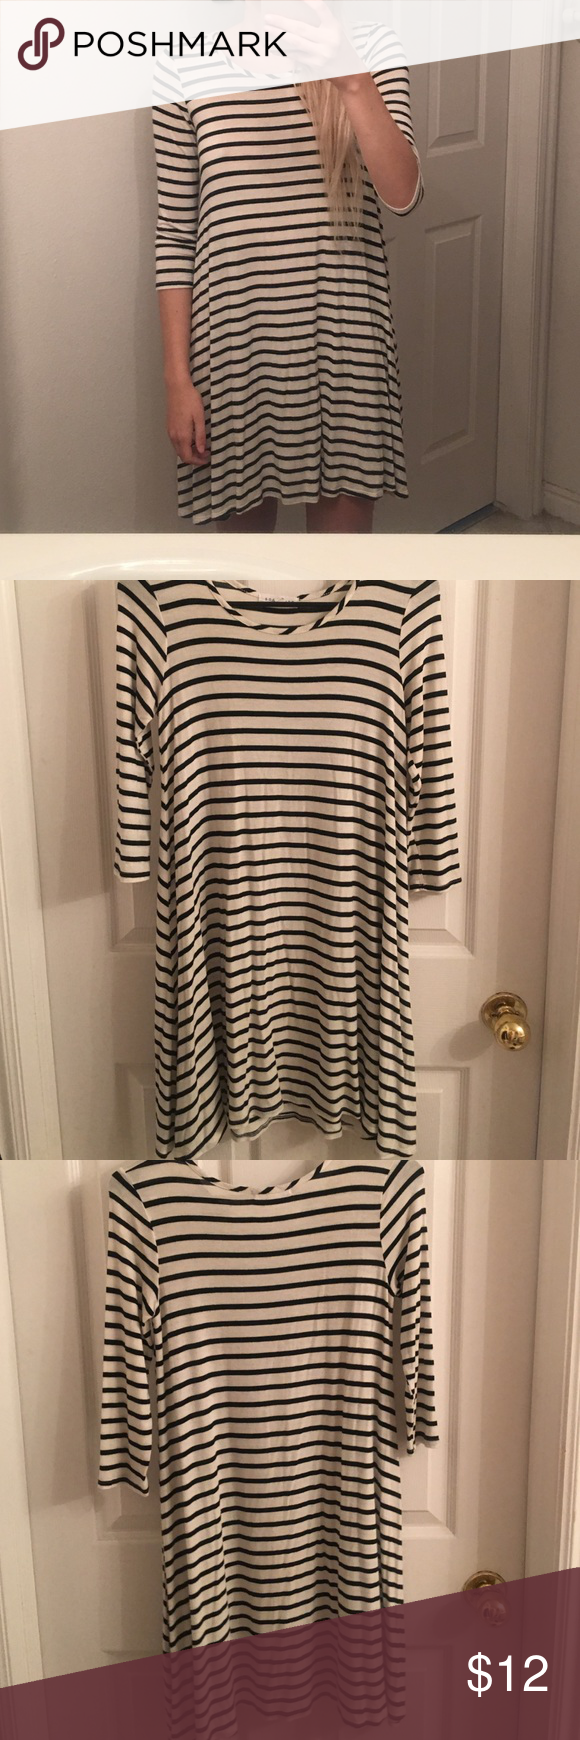 Socialite Striped Swing Dress Bought from tillys. Super cute in the fall with boots! Open to offers!!! Tilly's Dresses Mini